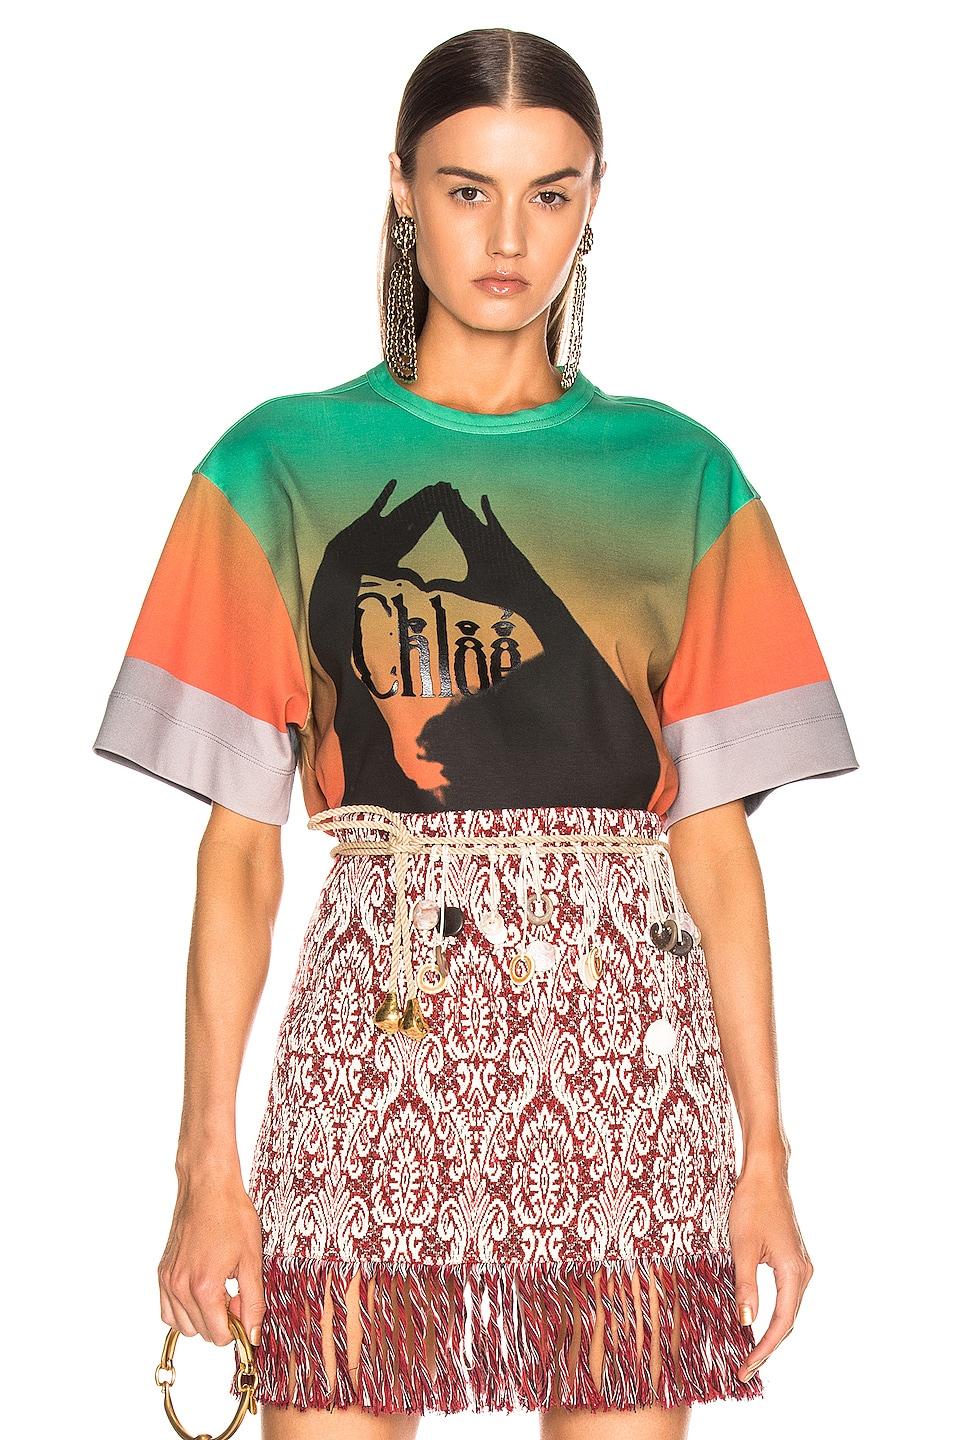 83cf02f5ca9e7 Image 1 of Chloe Logo Color Top in Green & Red